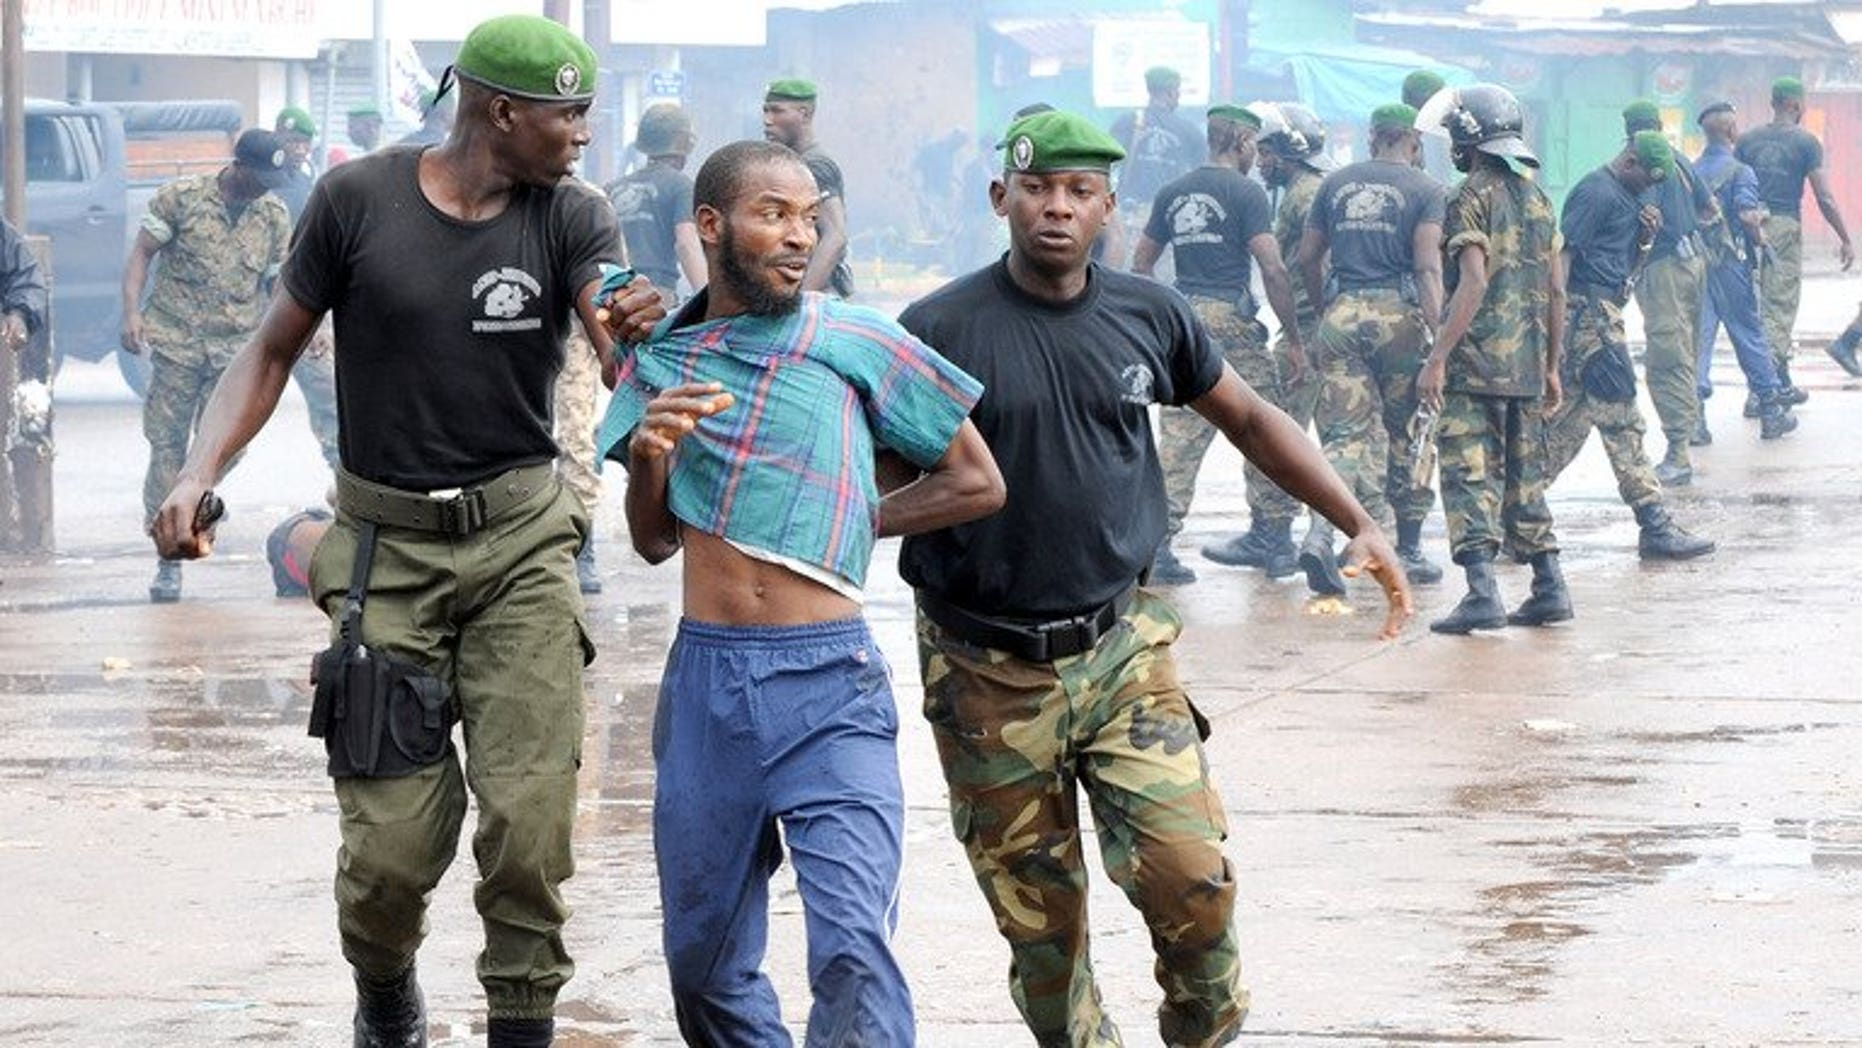 Guinean police arrest a protester on September 28, 2009 in front of the biggest stadium in the capital Conakry during a protest banned by Guinea's ruling junta. Guinean judges have charged a minister in connection with the Conakry Stadium massacre in which at least 157 protesters were killed.